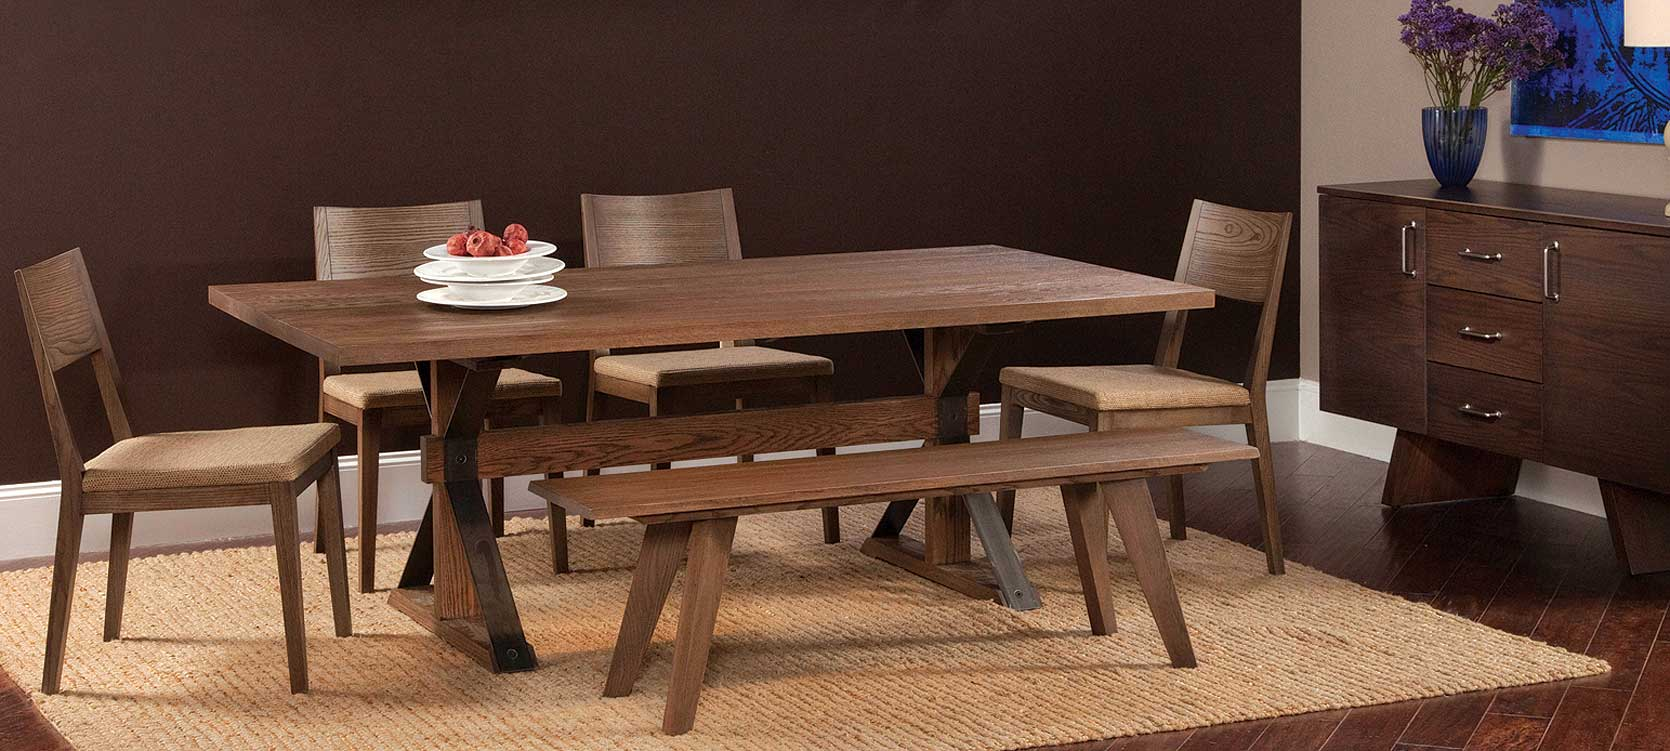 100 american made dining room sets 100 amish made dining room tables amish dining leg - American made dining room furniture ...